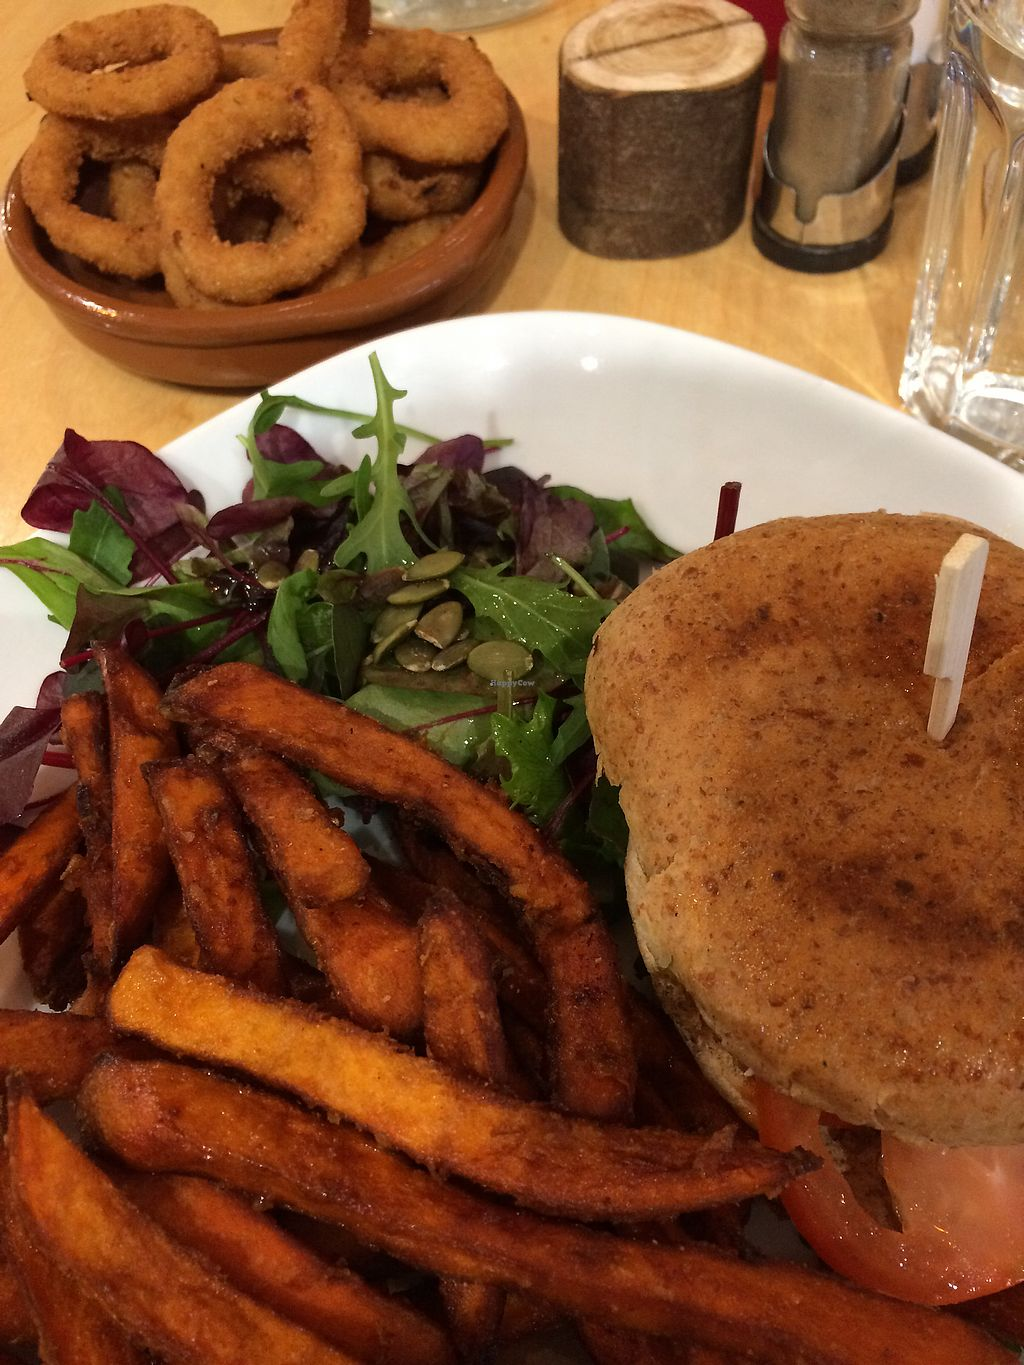 "Photo of Cafe Thrive  by <a href=""/members/profile/JMTurner"">JMTurner</a> <br/>Veggie burger (it was unreal) sweet potato fries, salad and onion rings <br/> November 18, 2017  - <a href='/contact/abuse/image/98116/326804'>Report</a>"